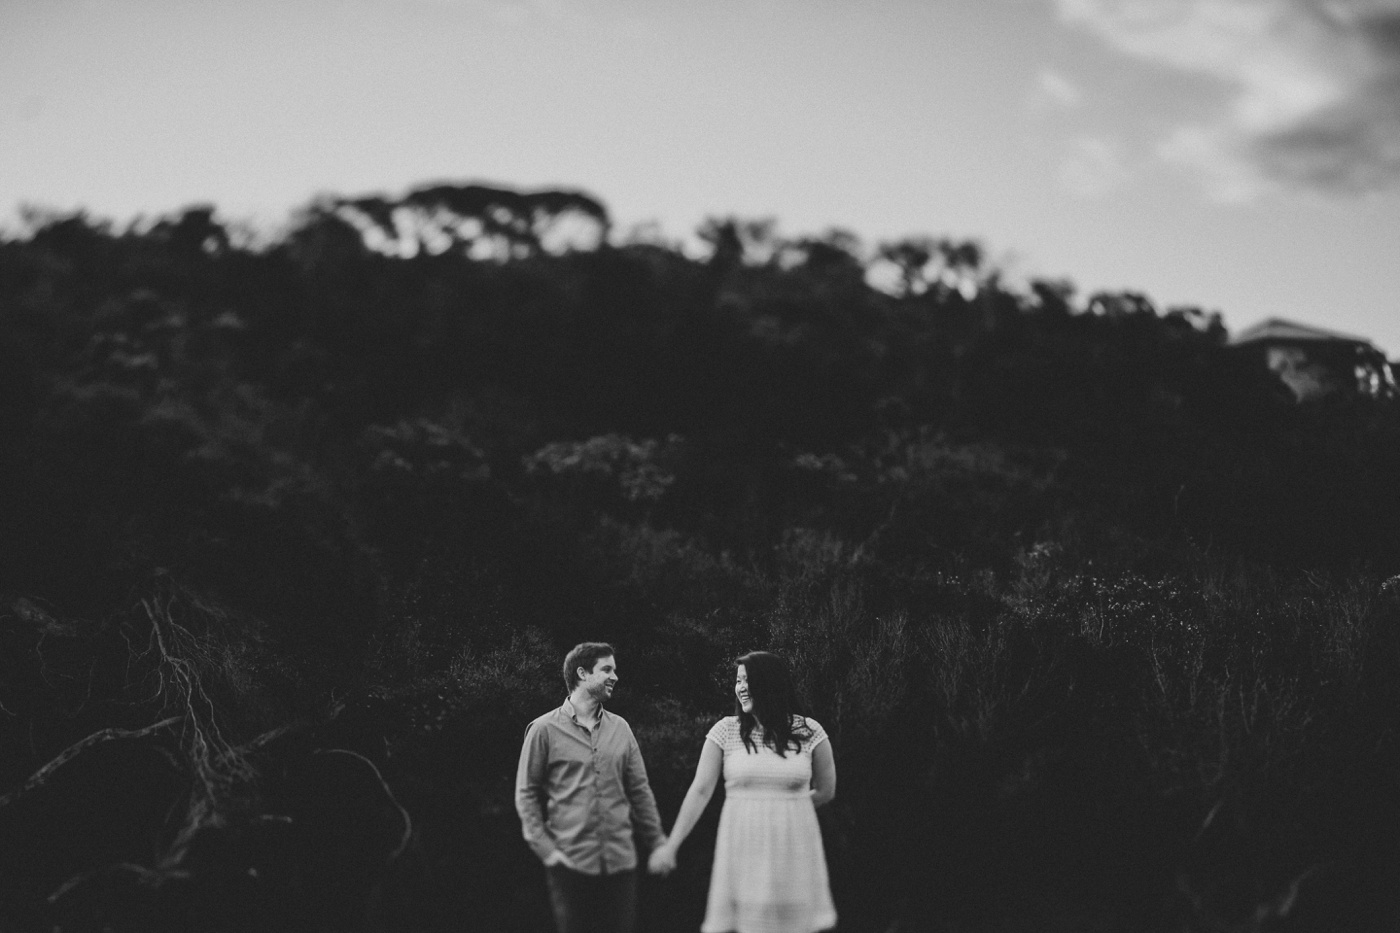 alliedave_mornington-peninsula-back-beach-relaxed-engagement-session_melbourne-candid-wedding-photographer_26